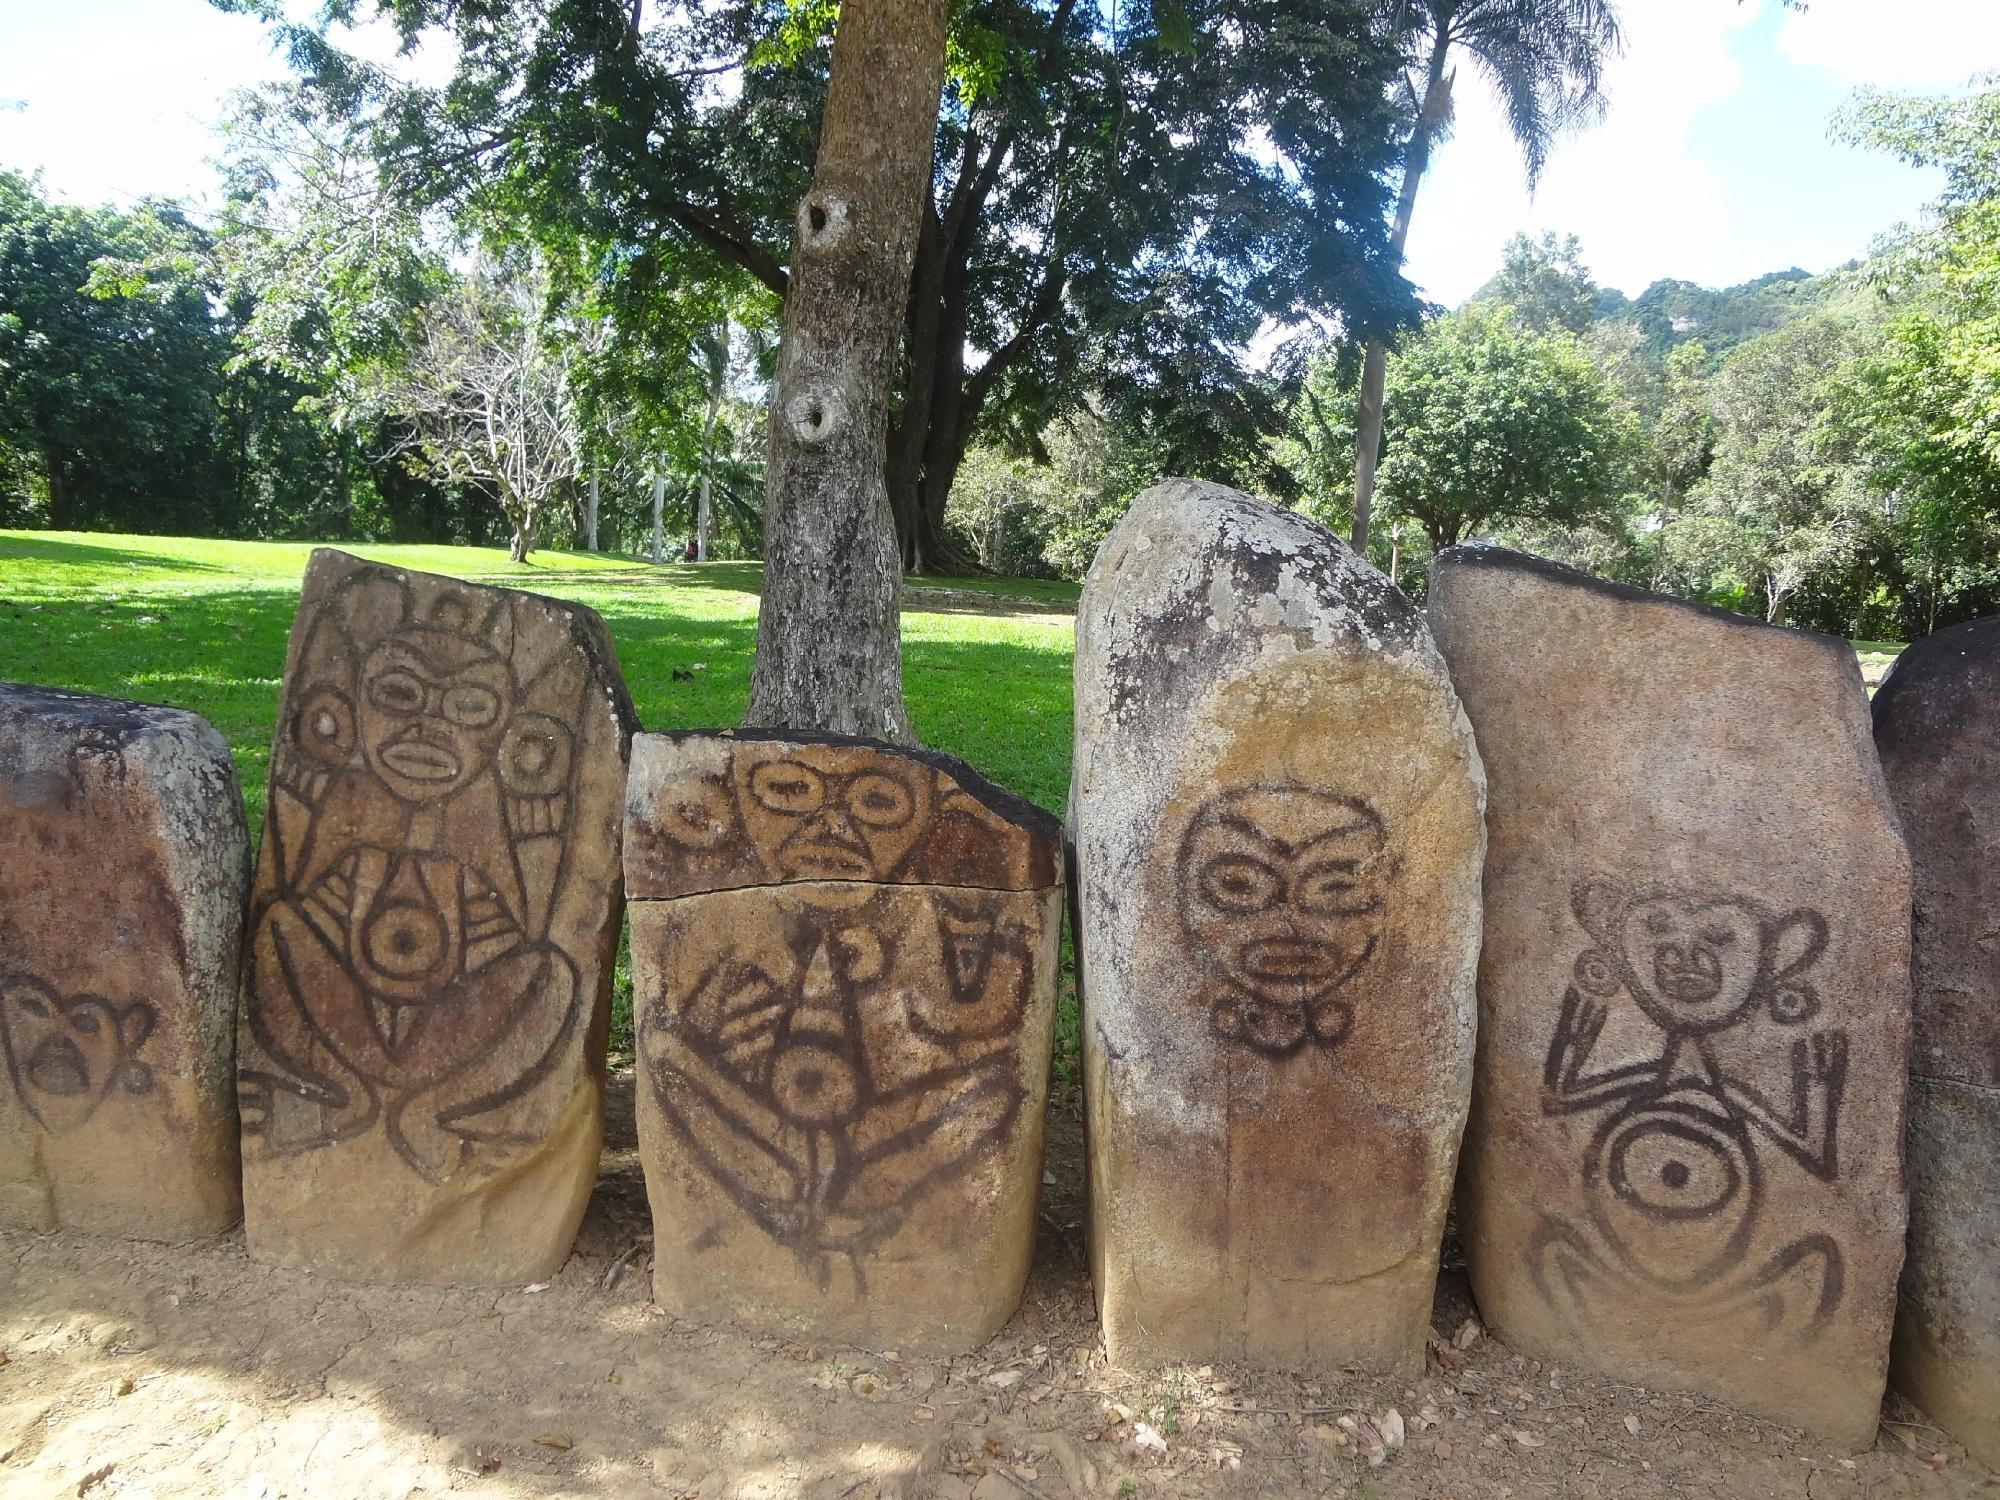 Monoliths painted with petroglyphs of animal figures, human faces without a body, and complete human figures with zoomorphic features.